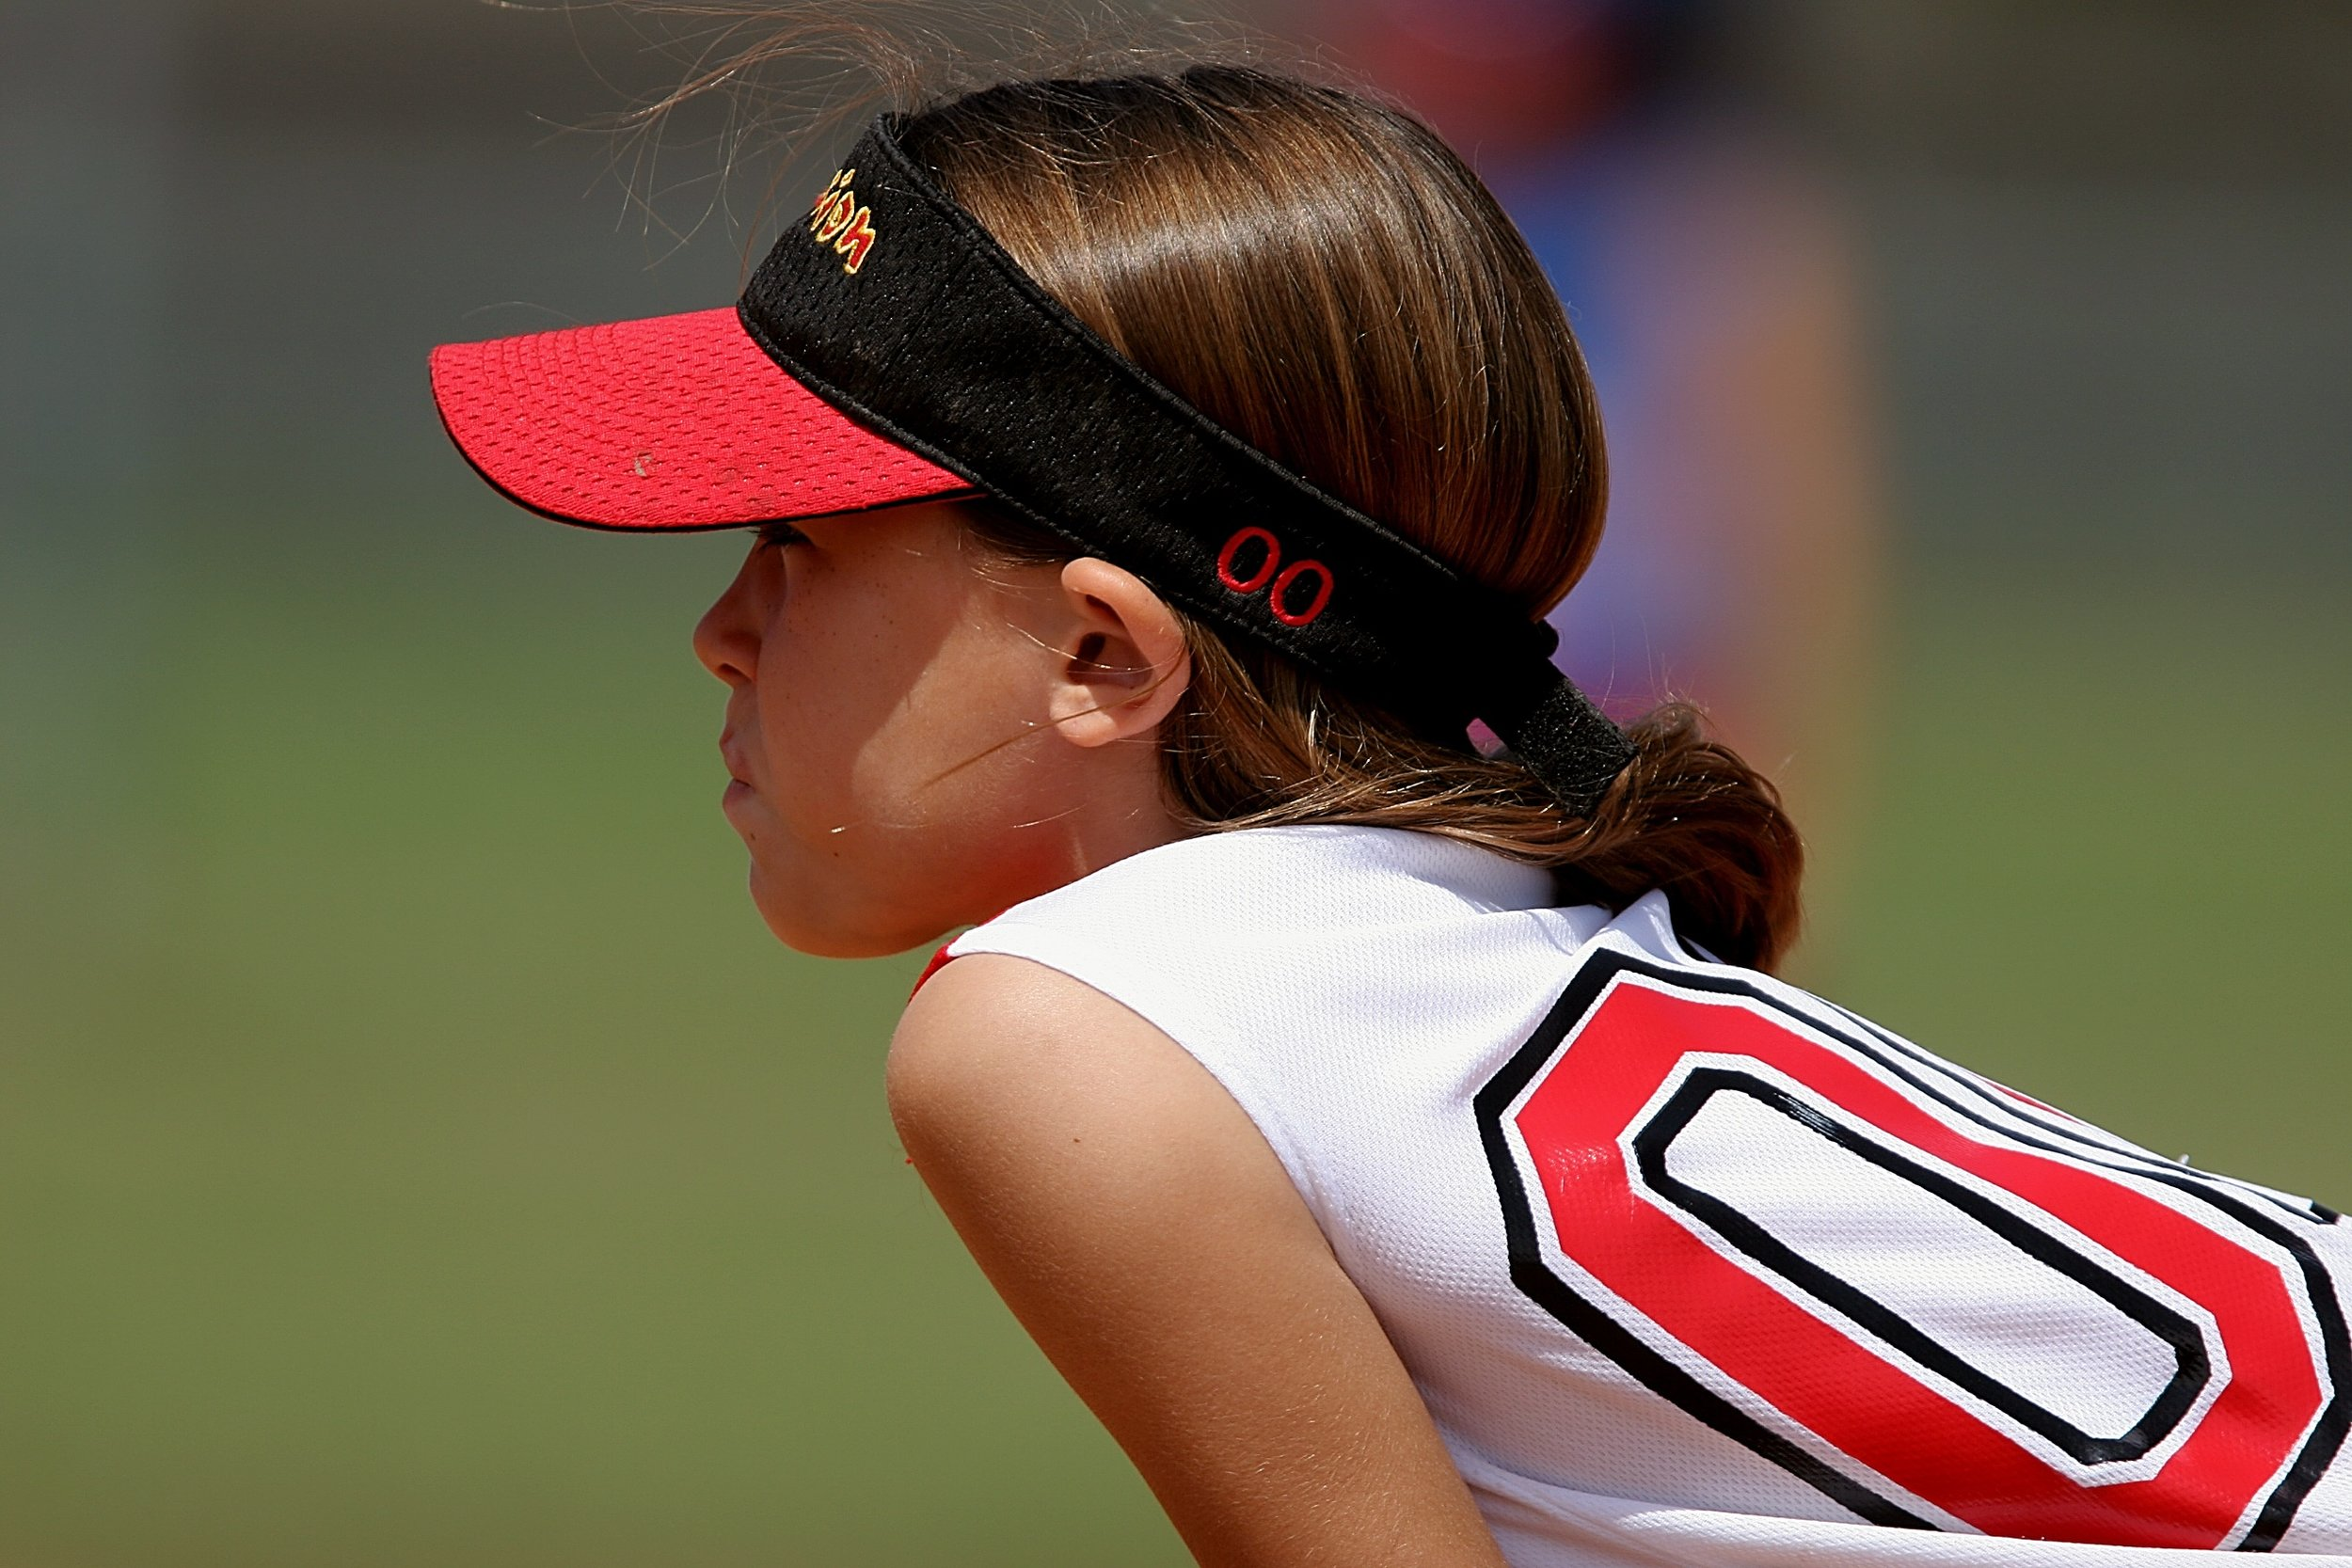 softball-player-female-youth-163375.jpeg